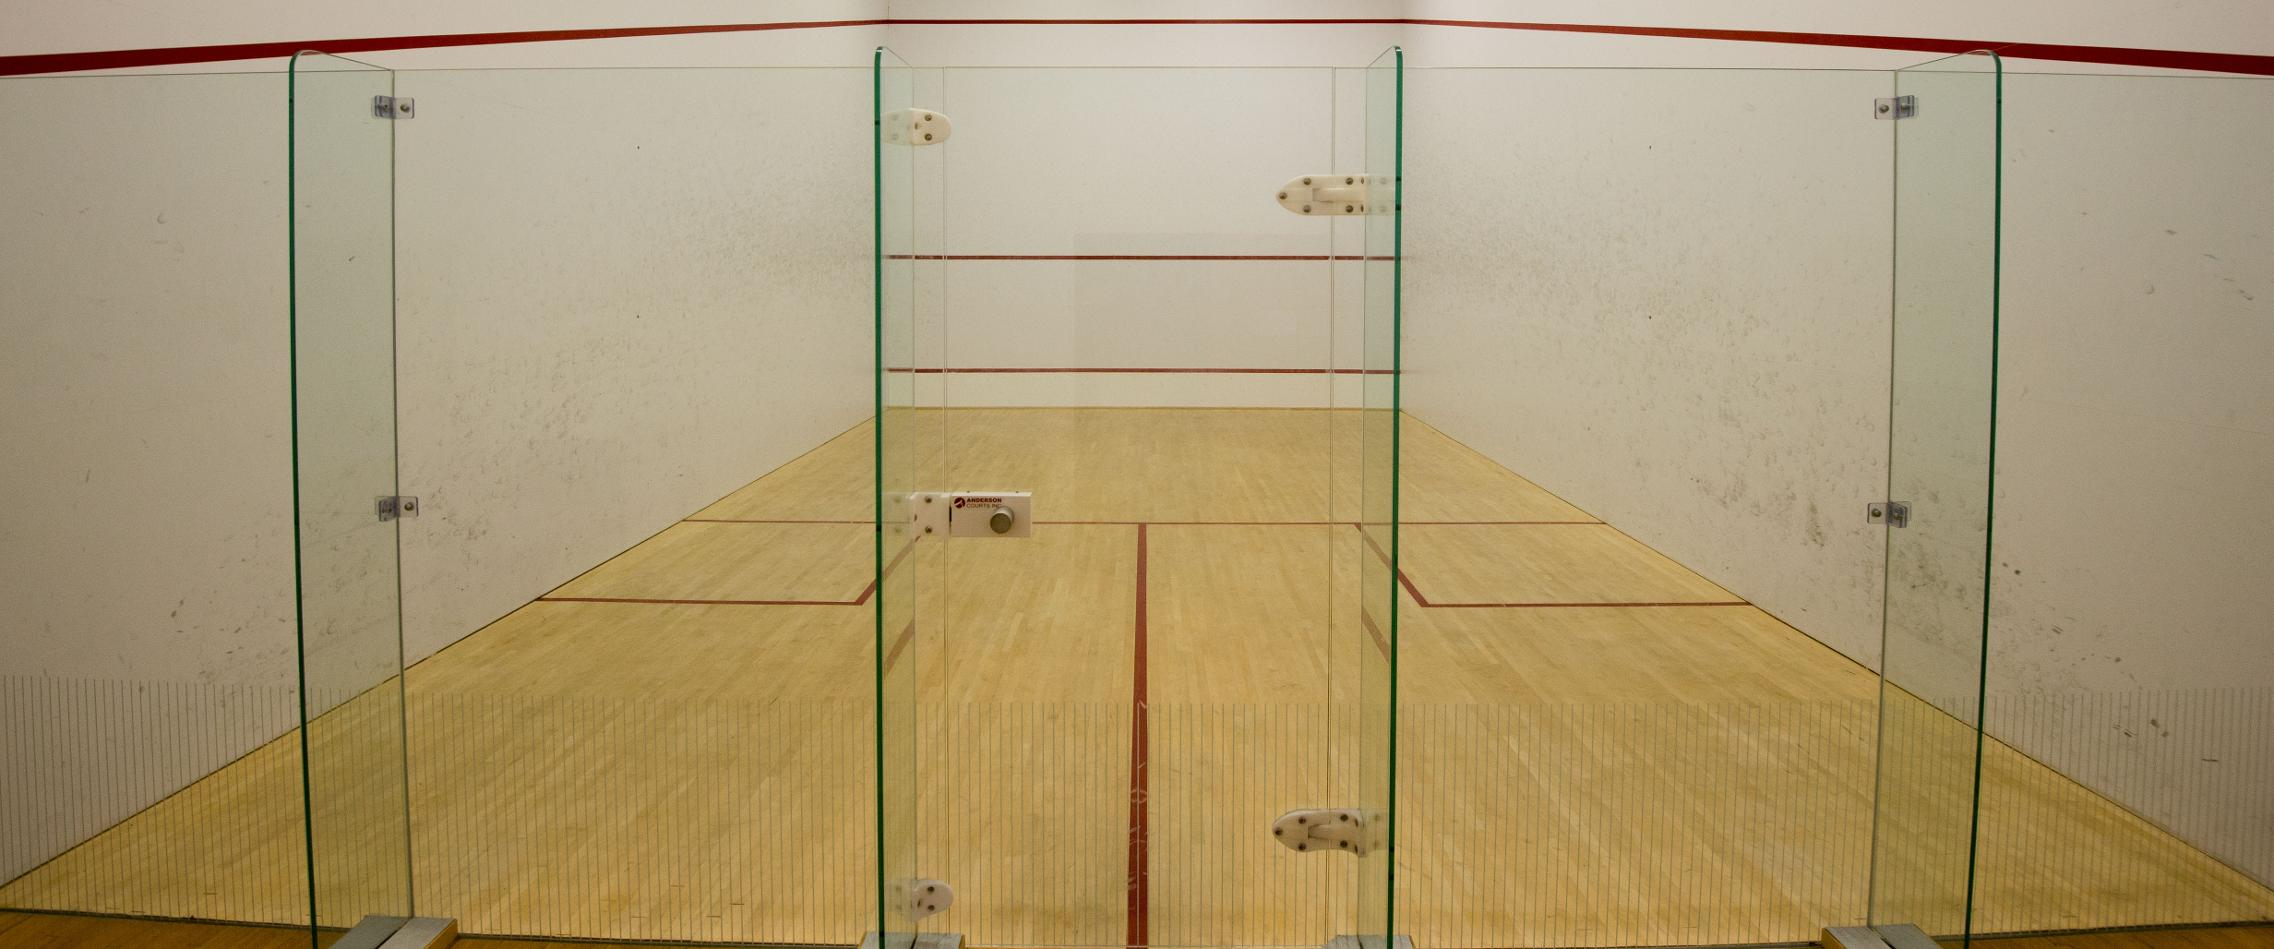 Roland Grimm Racquetball & Squash Courts